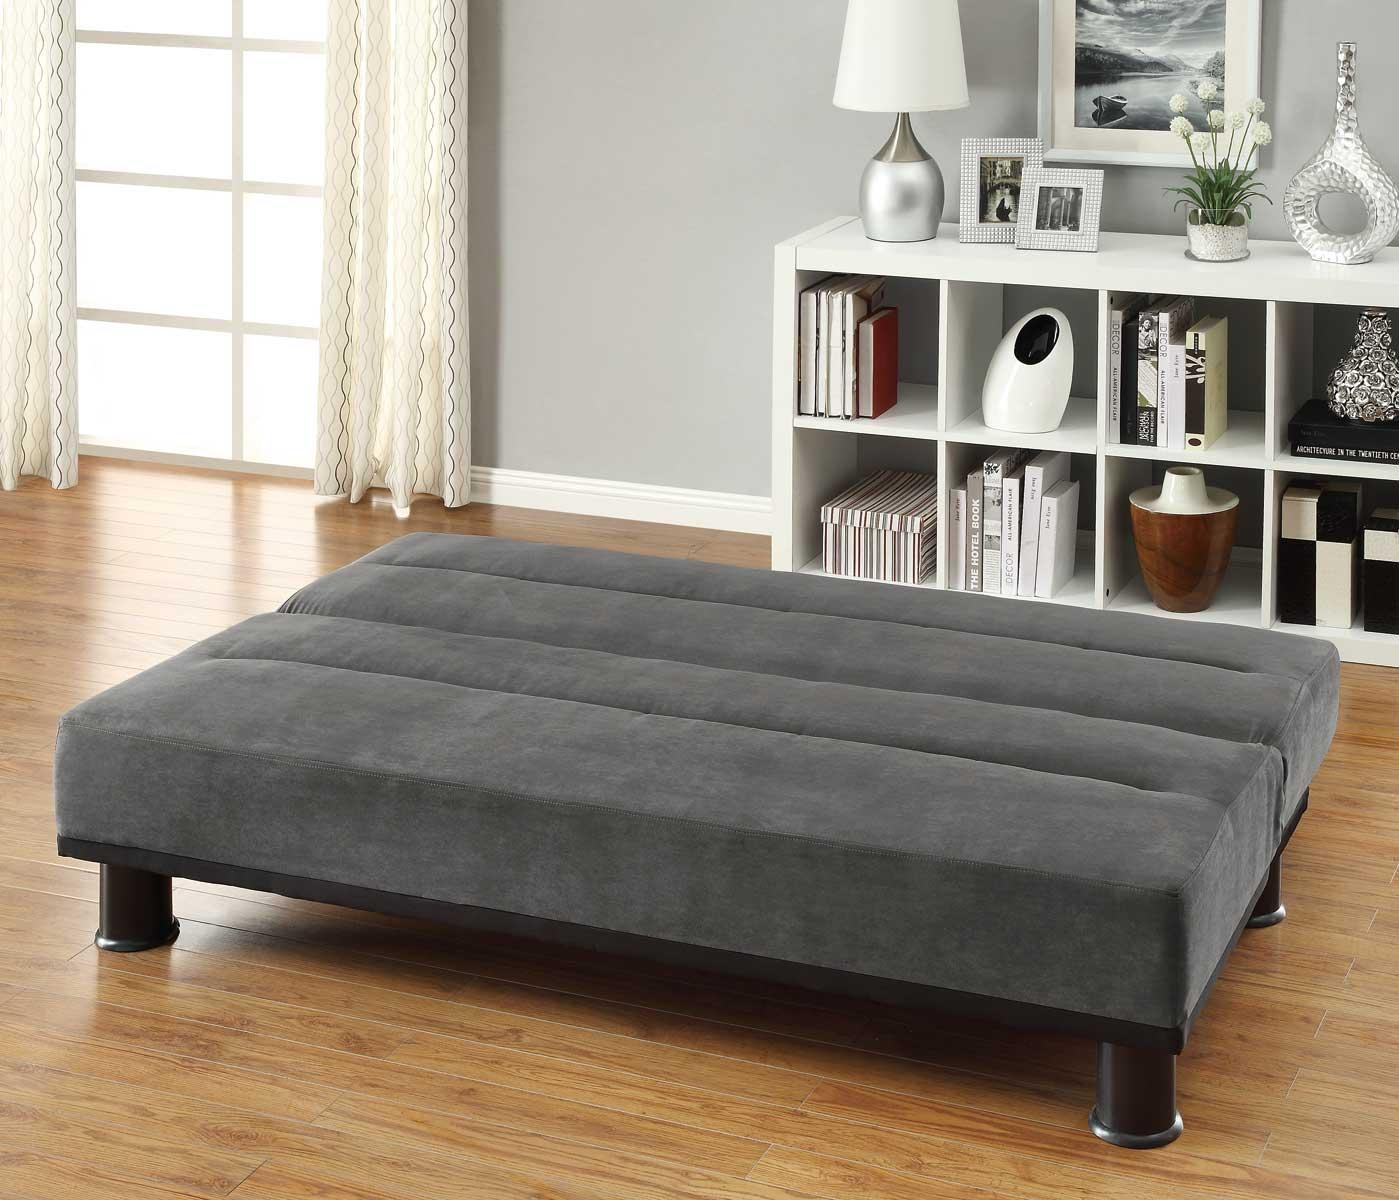 Homelegance Callie Click Clack Sofa Bed – Graphite – Grey With Regard To Clic Clac Sofa Beds (Image 11 of 20)